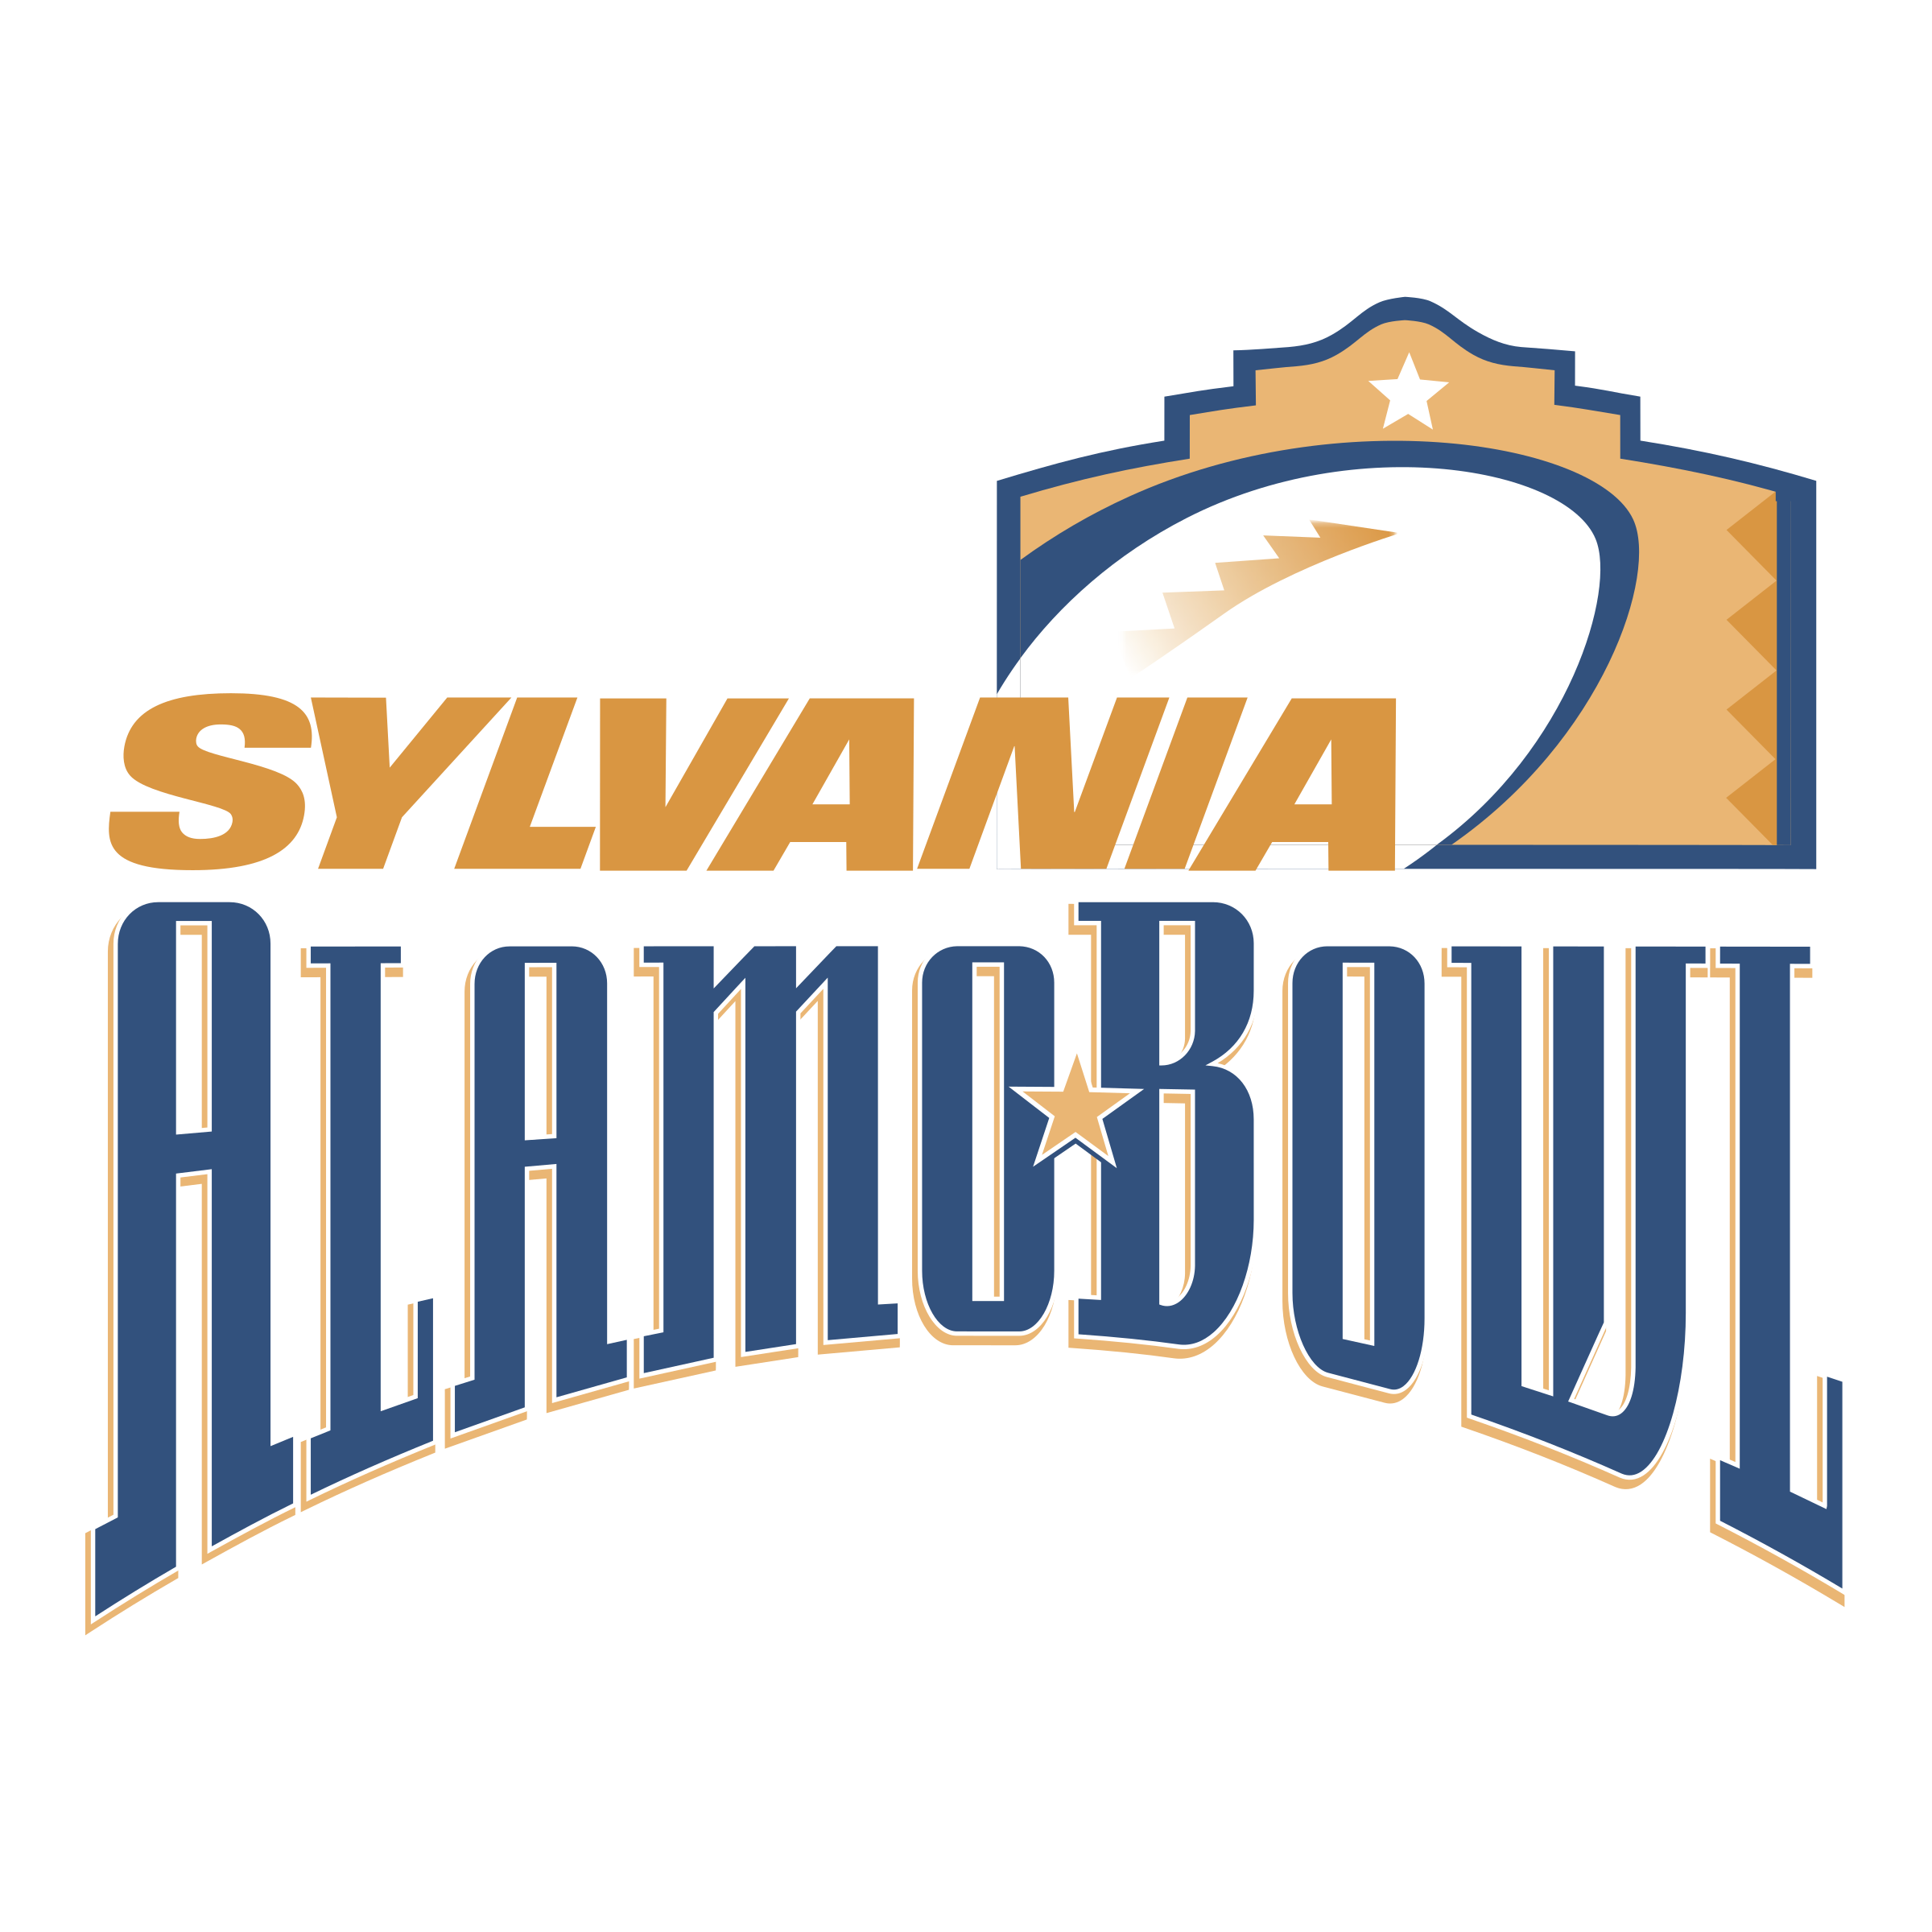 Alamo vector. Bowl logo png transparent